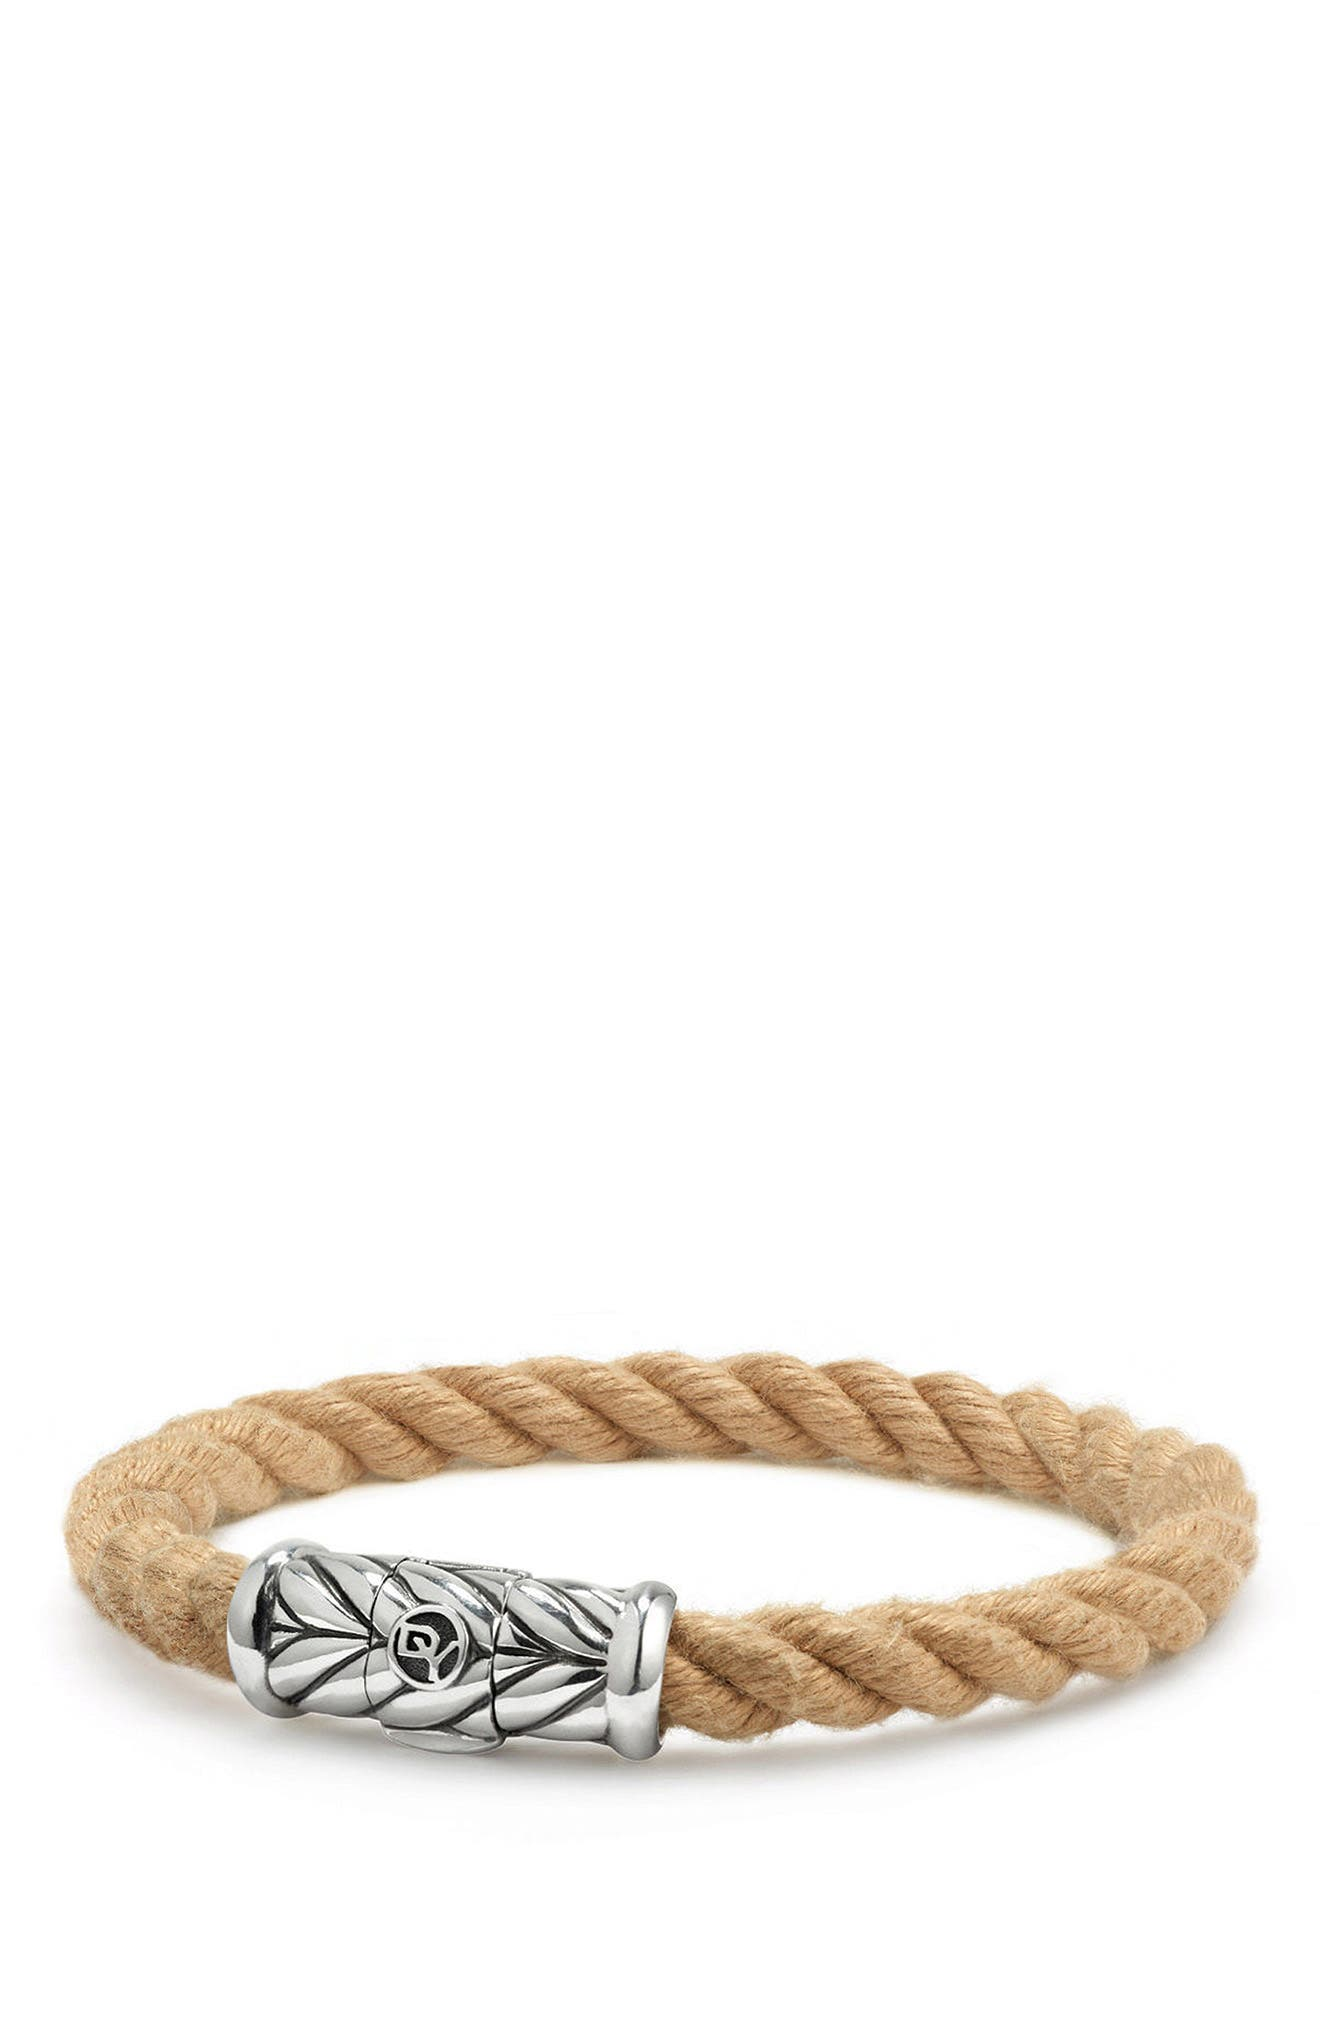 Maritime Rope Bracelet,                         Main,                         color, SILVER